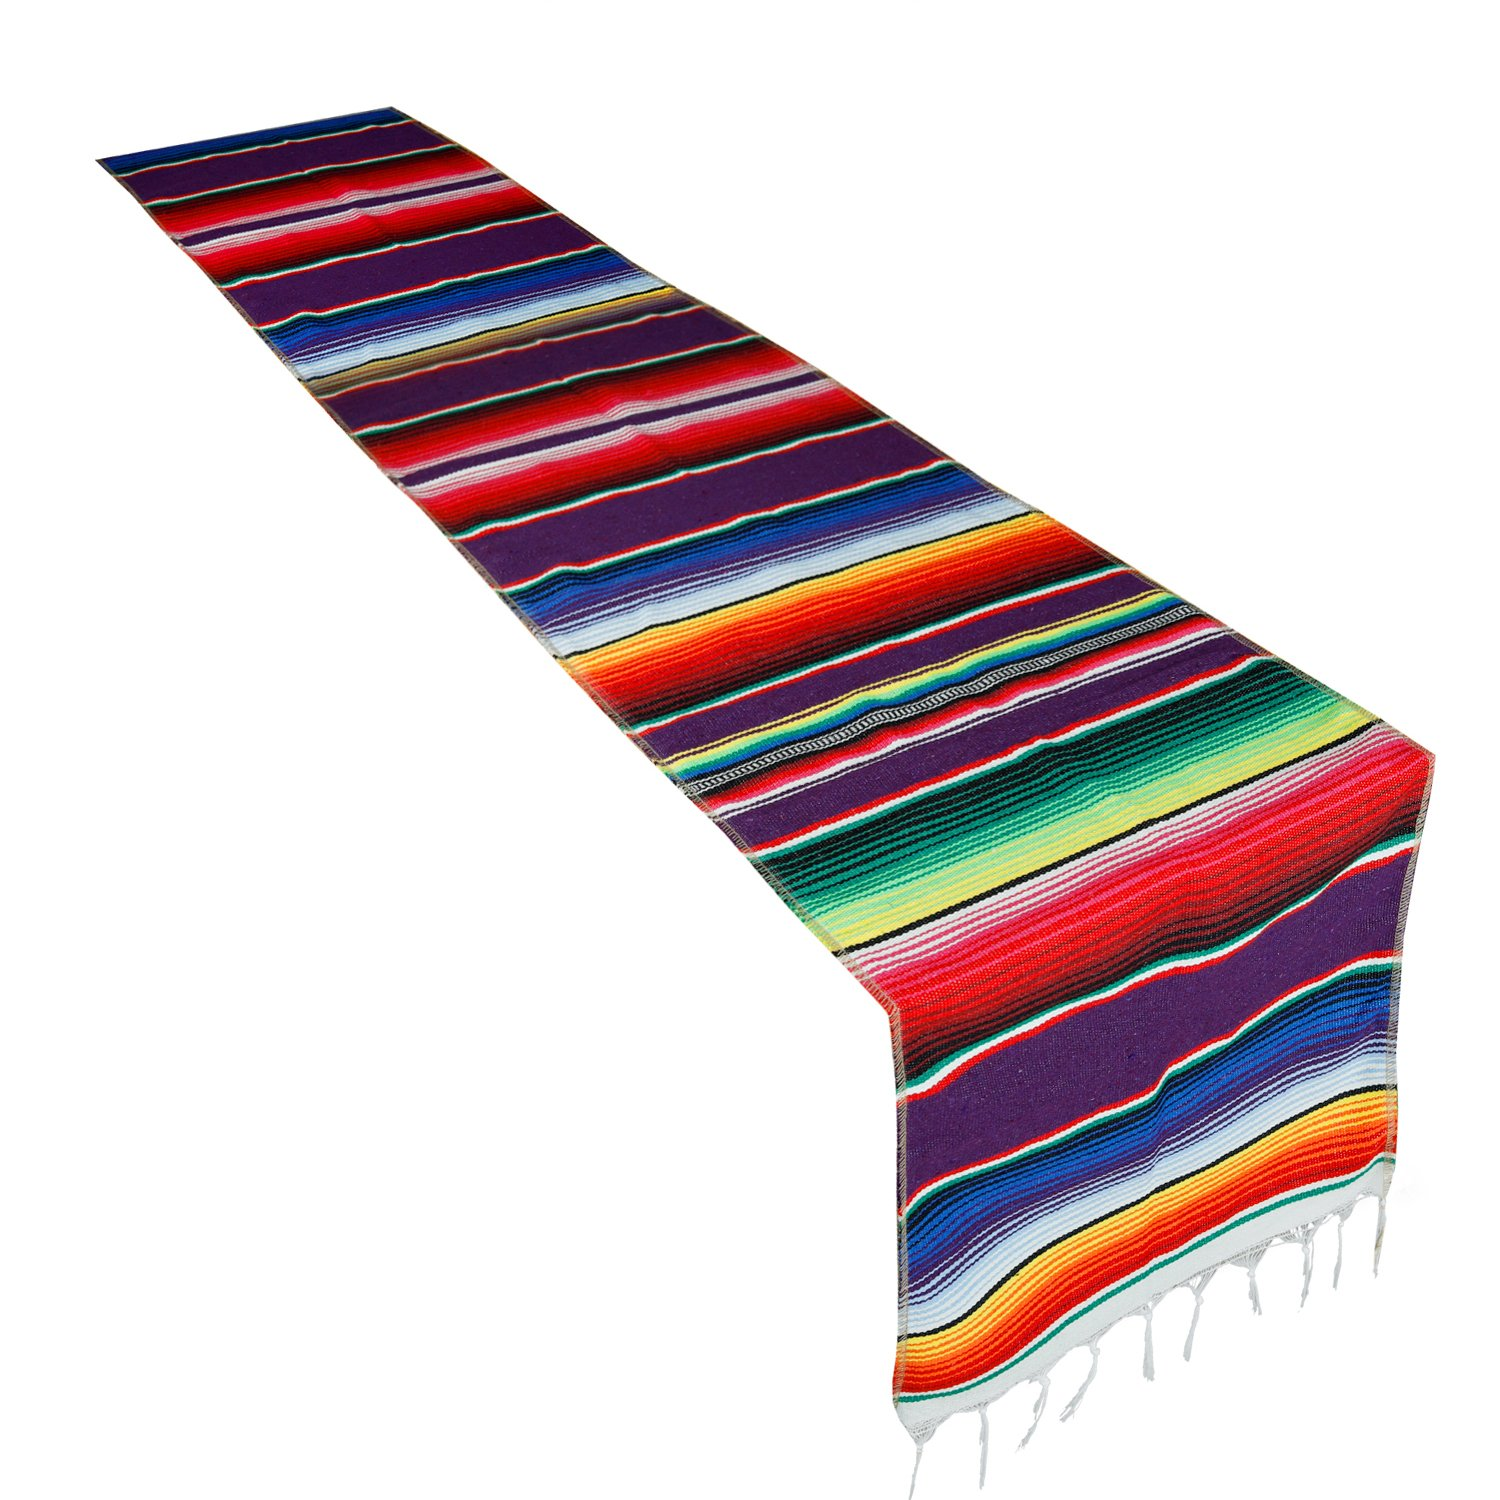 CRJHNS 14x108 Inch Table Runner Mexican Handwoven Cotton Serape for Party Wedding and Home Decorations, Long(14x108)